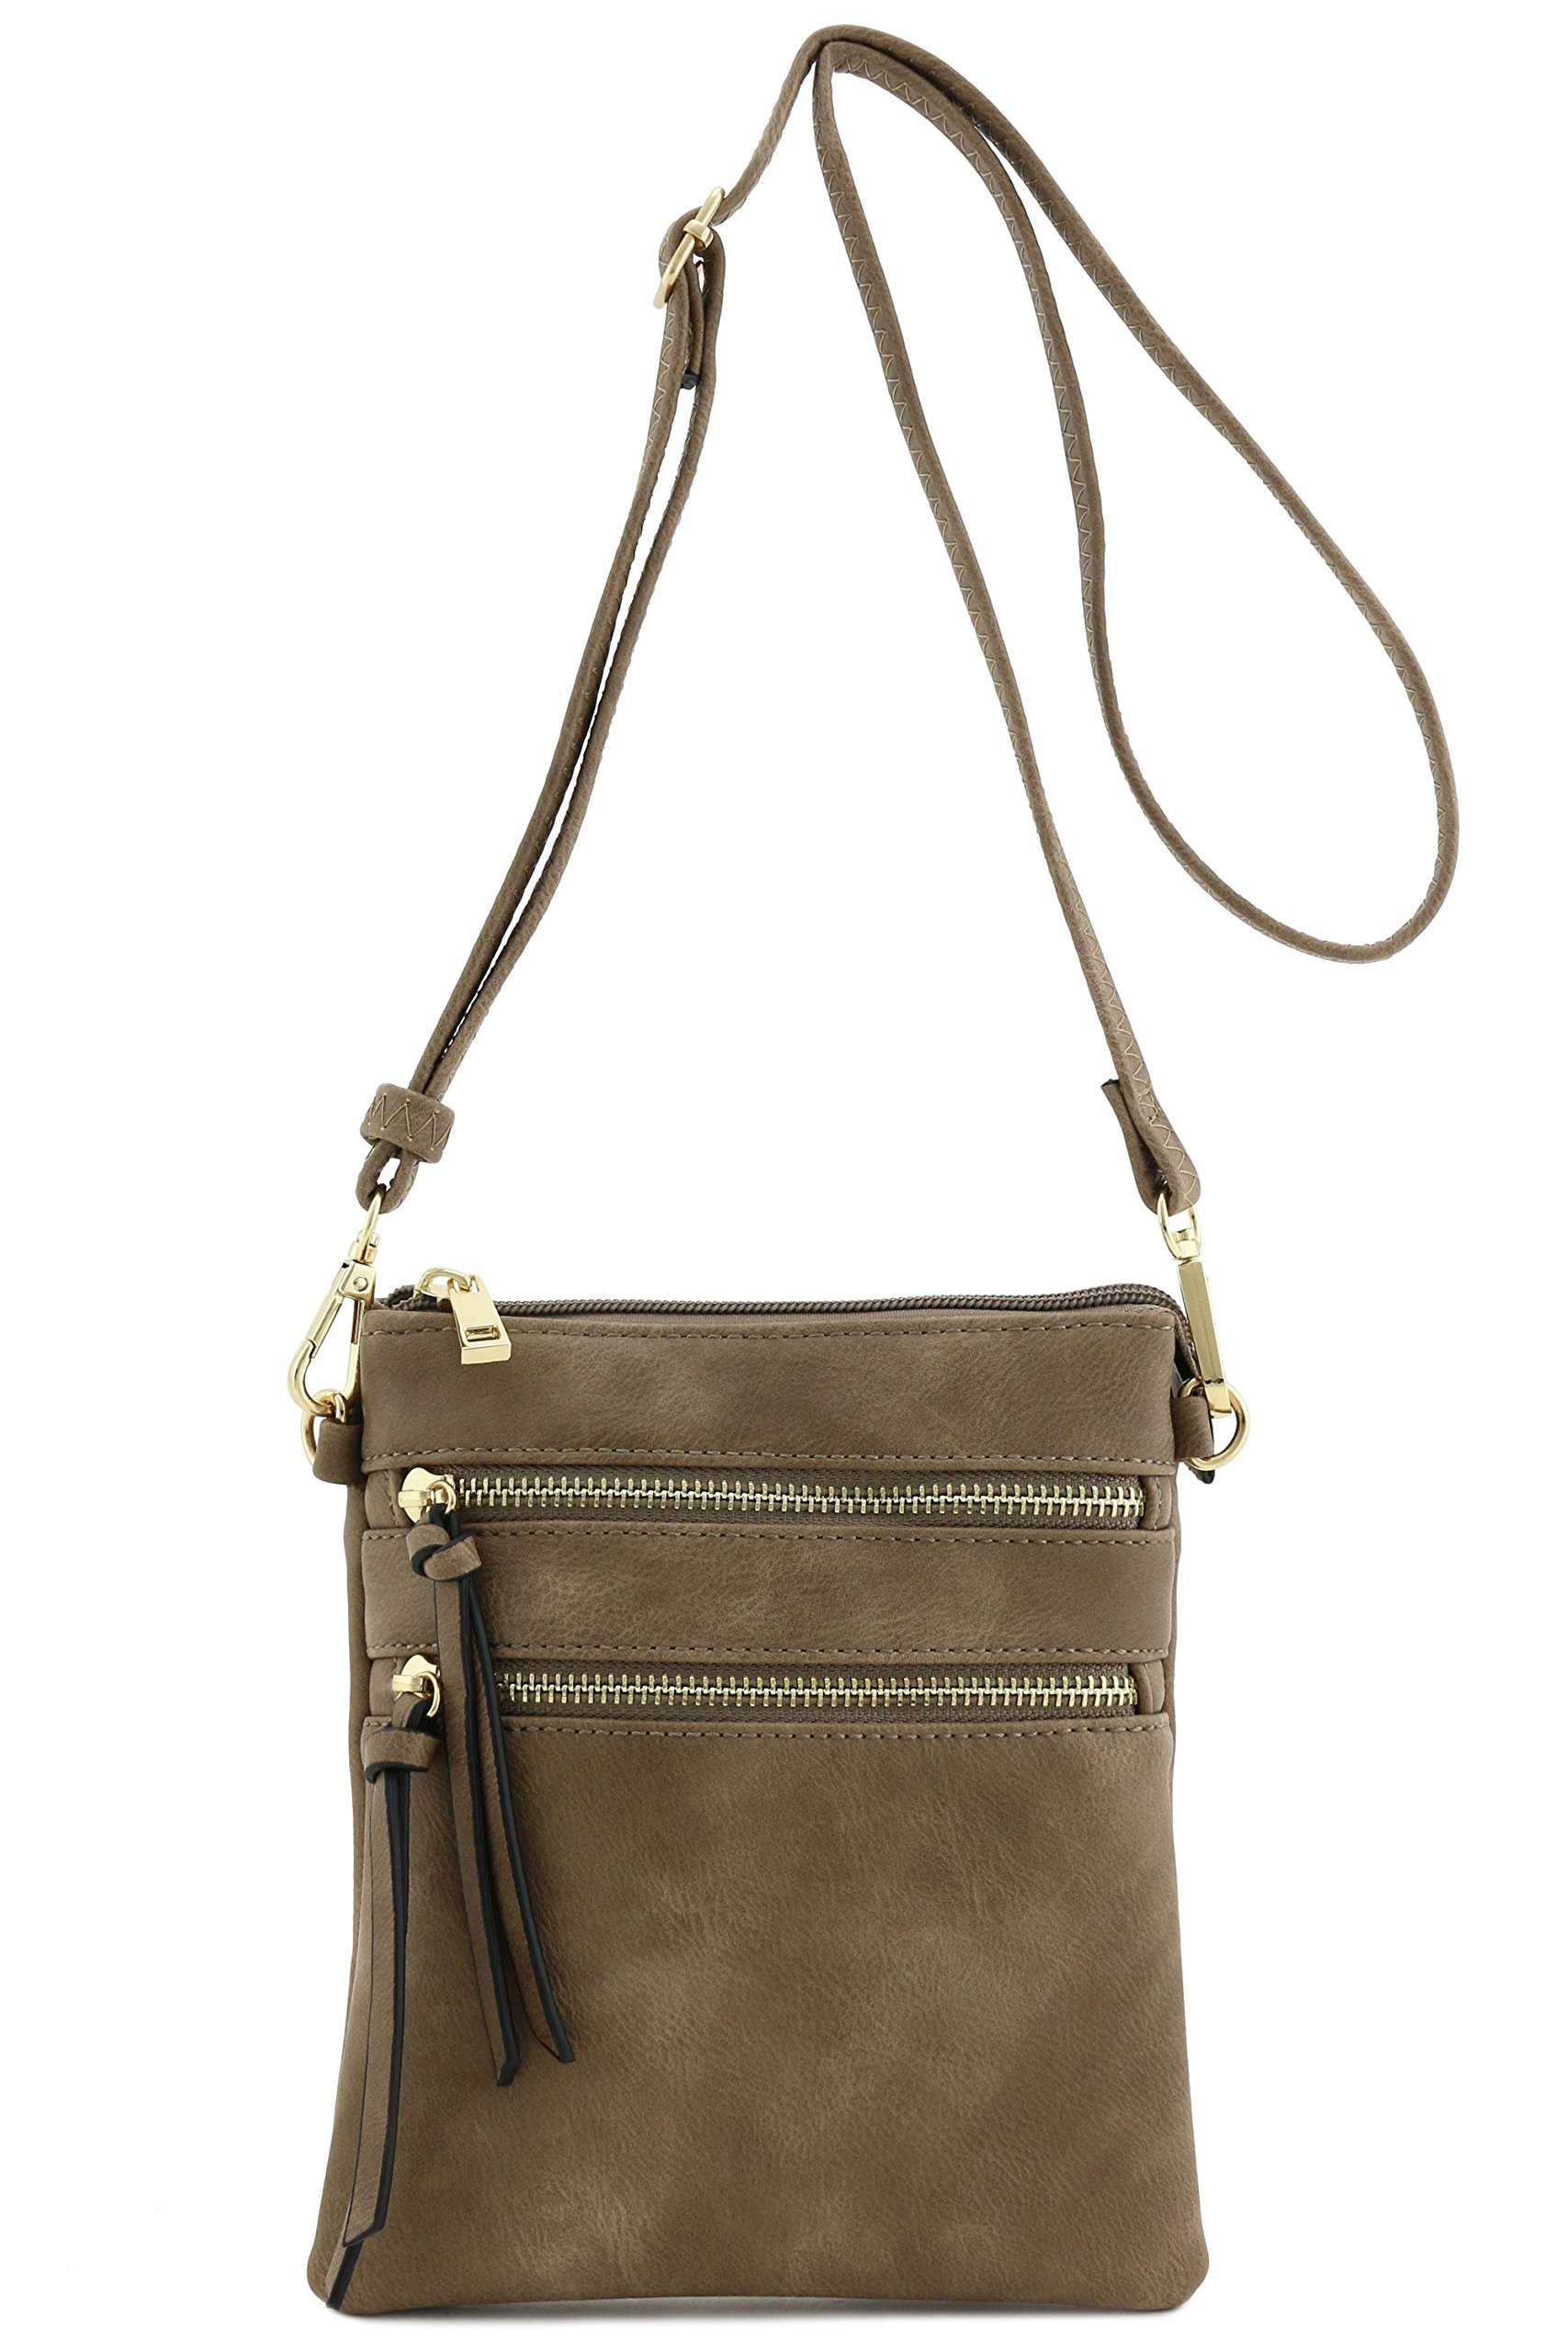 Functional Multi Pocket Crossbody Bag (Taupe) by Isabelle (Image #1)